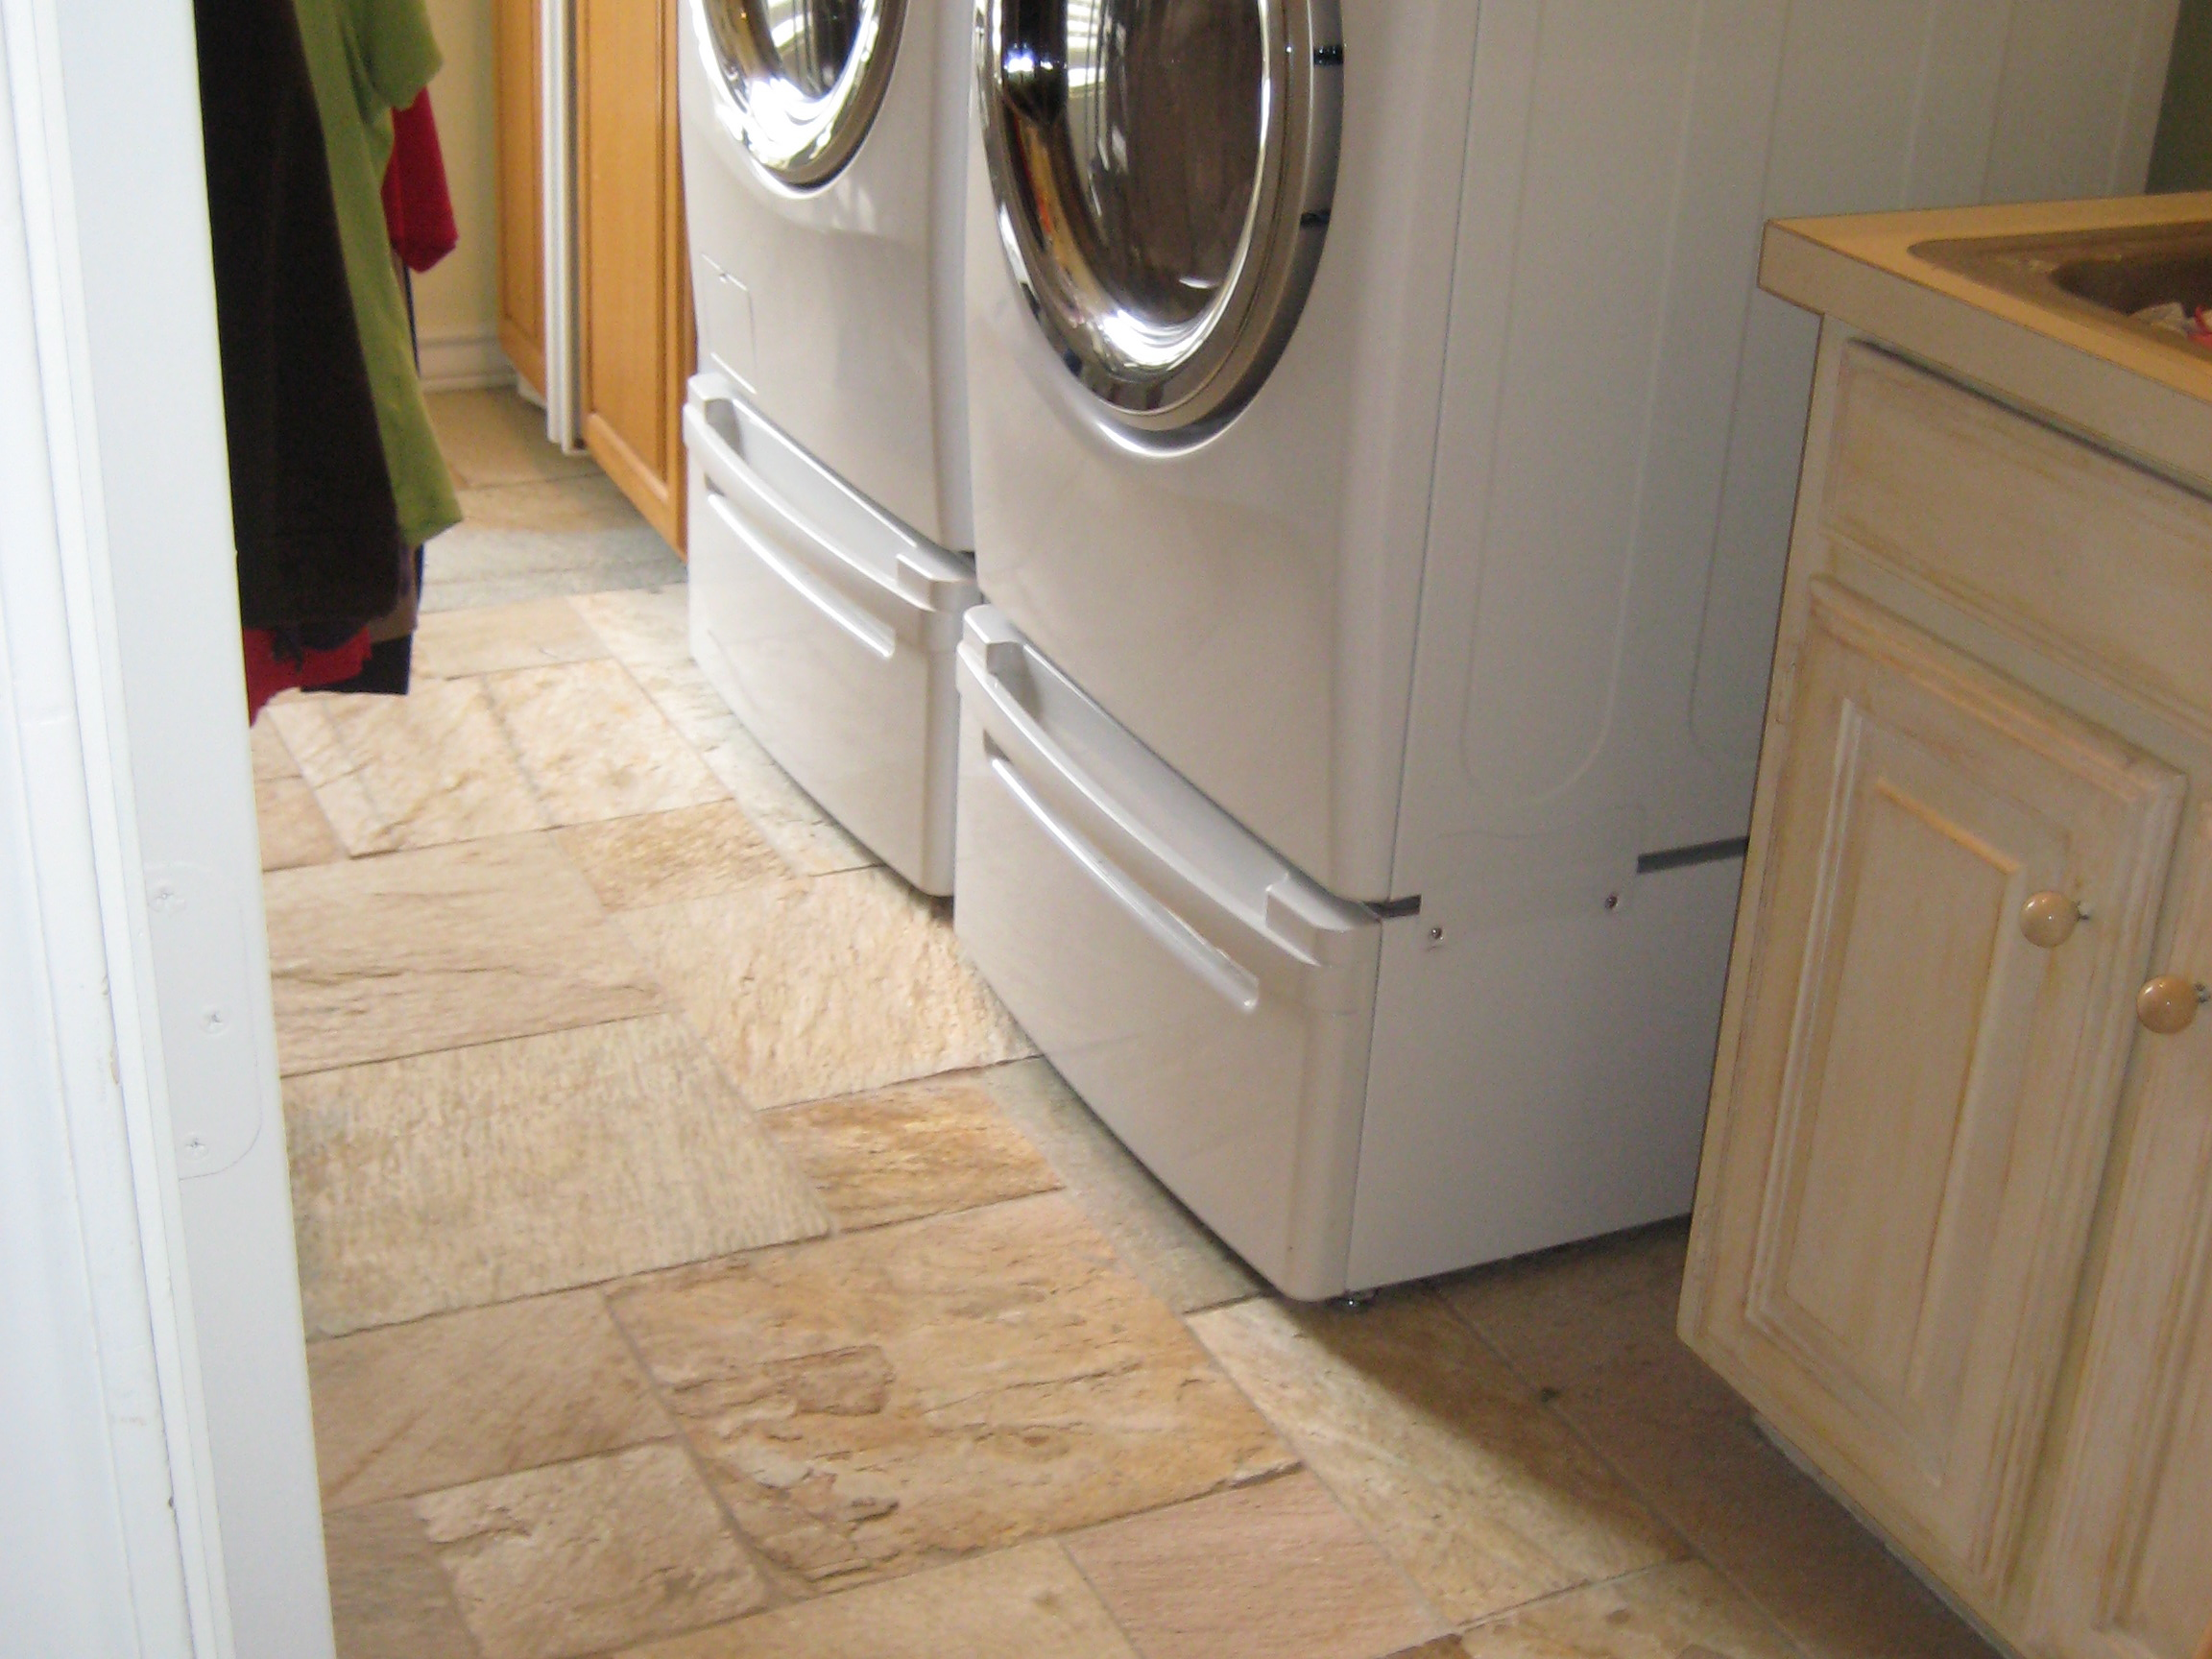 Laundry Room Tiling Subfloor Vinyl Foundation Washer House Remodeling Decorating Construction Energy Use Kitchen Bathroom Bedroom Building Rooms City Data Forum